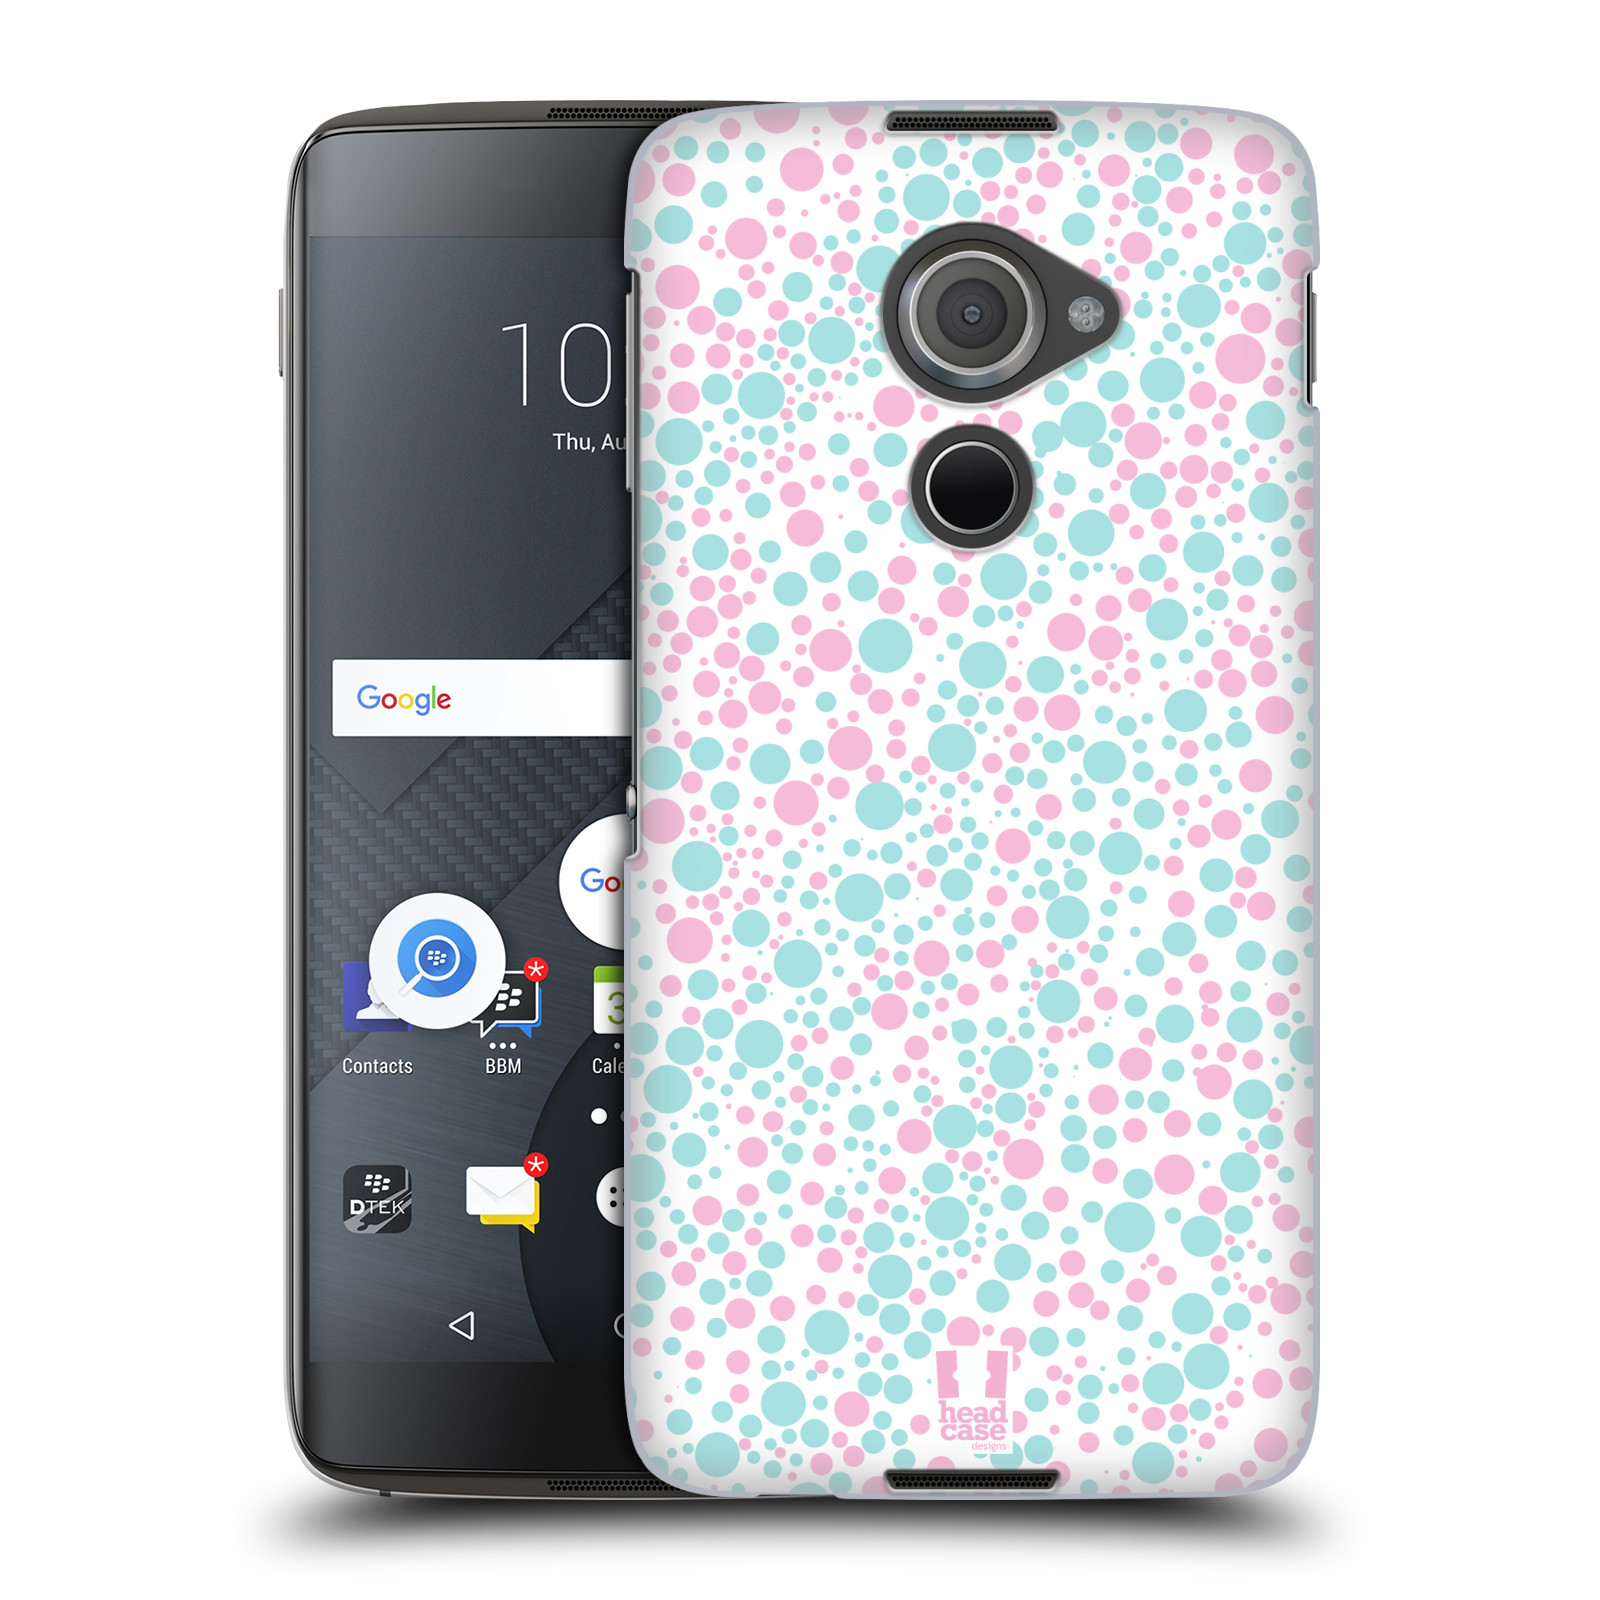 HEAD-CASE-DESIGNS-PARTICLE-PATTERNS-HARD-BACK-CASE-FOR-BLACKBERRY-DTEK60